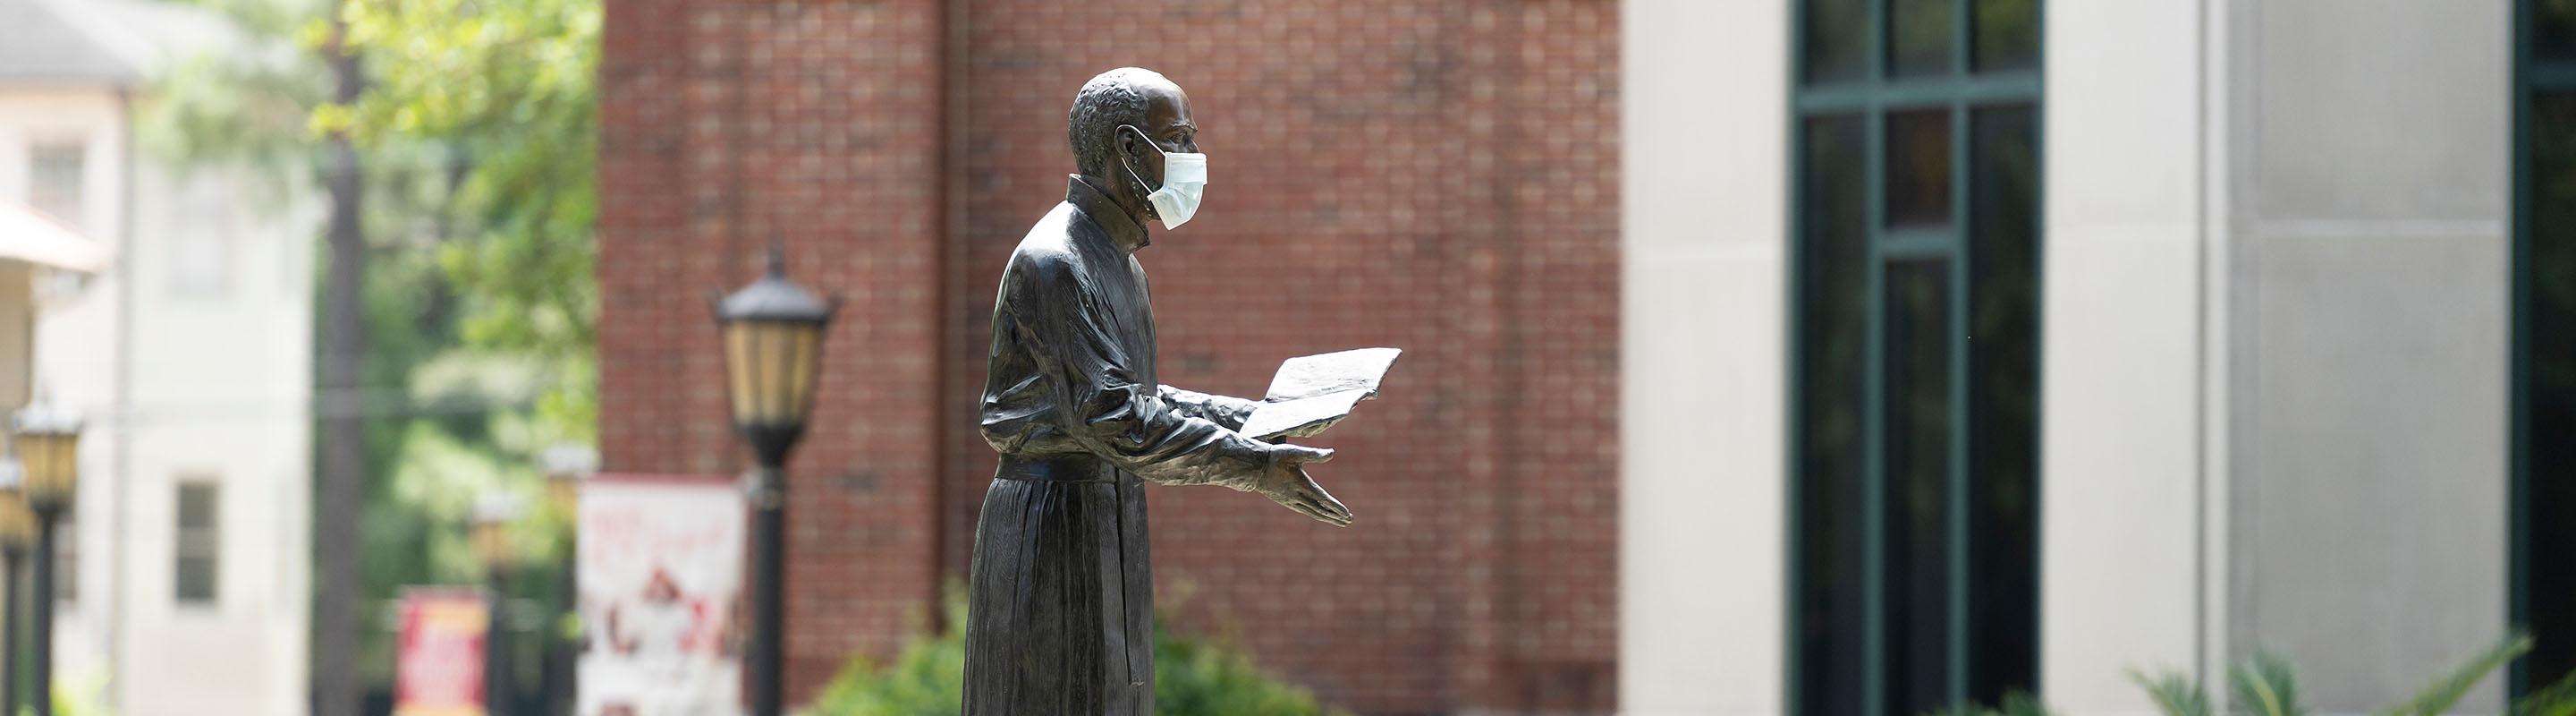 St. Ignatius statue with face mask